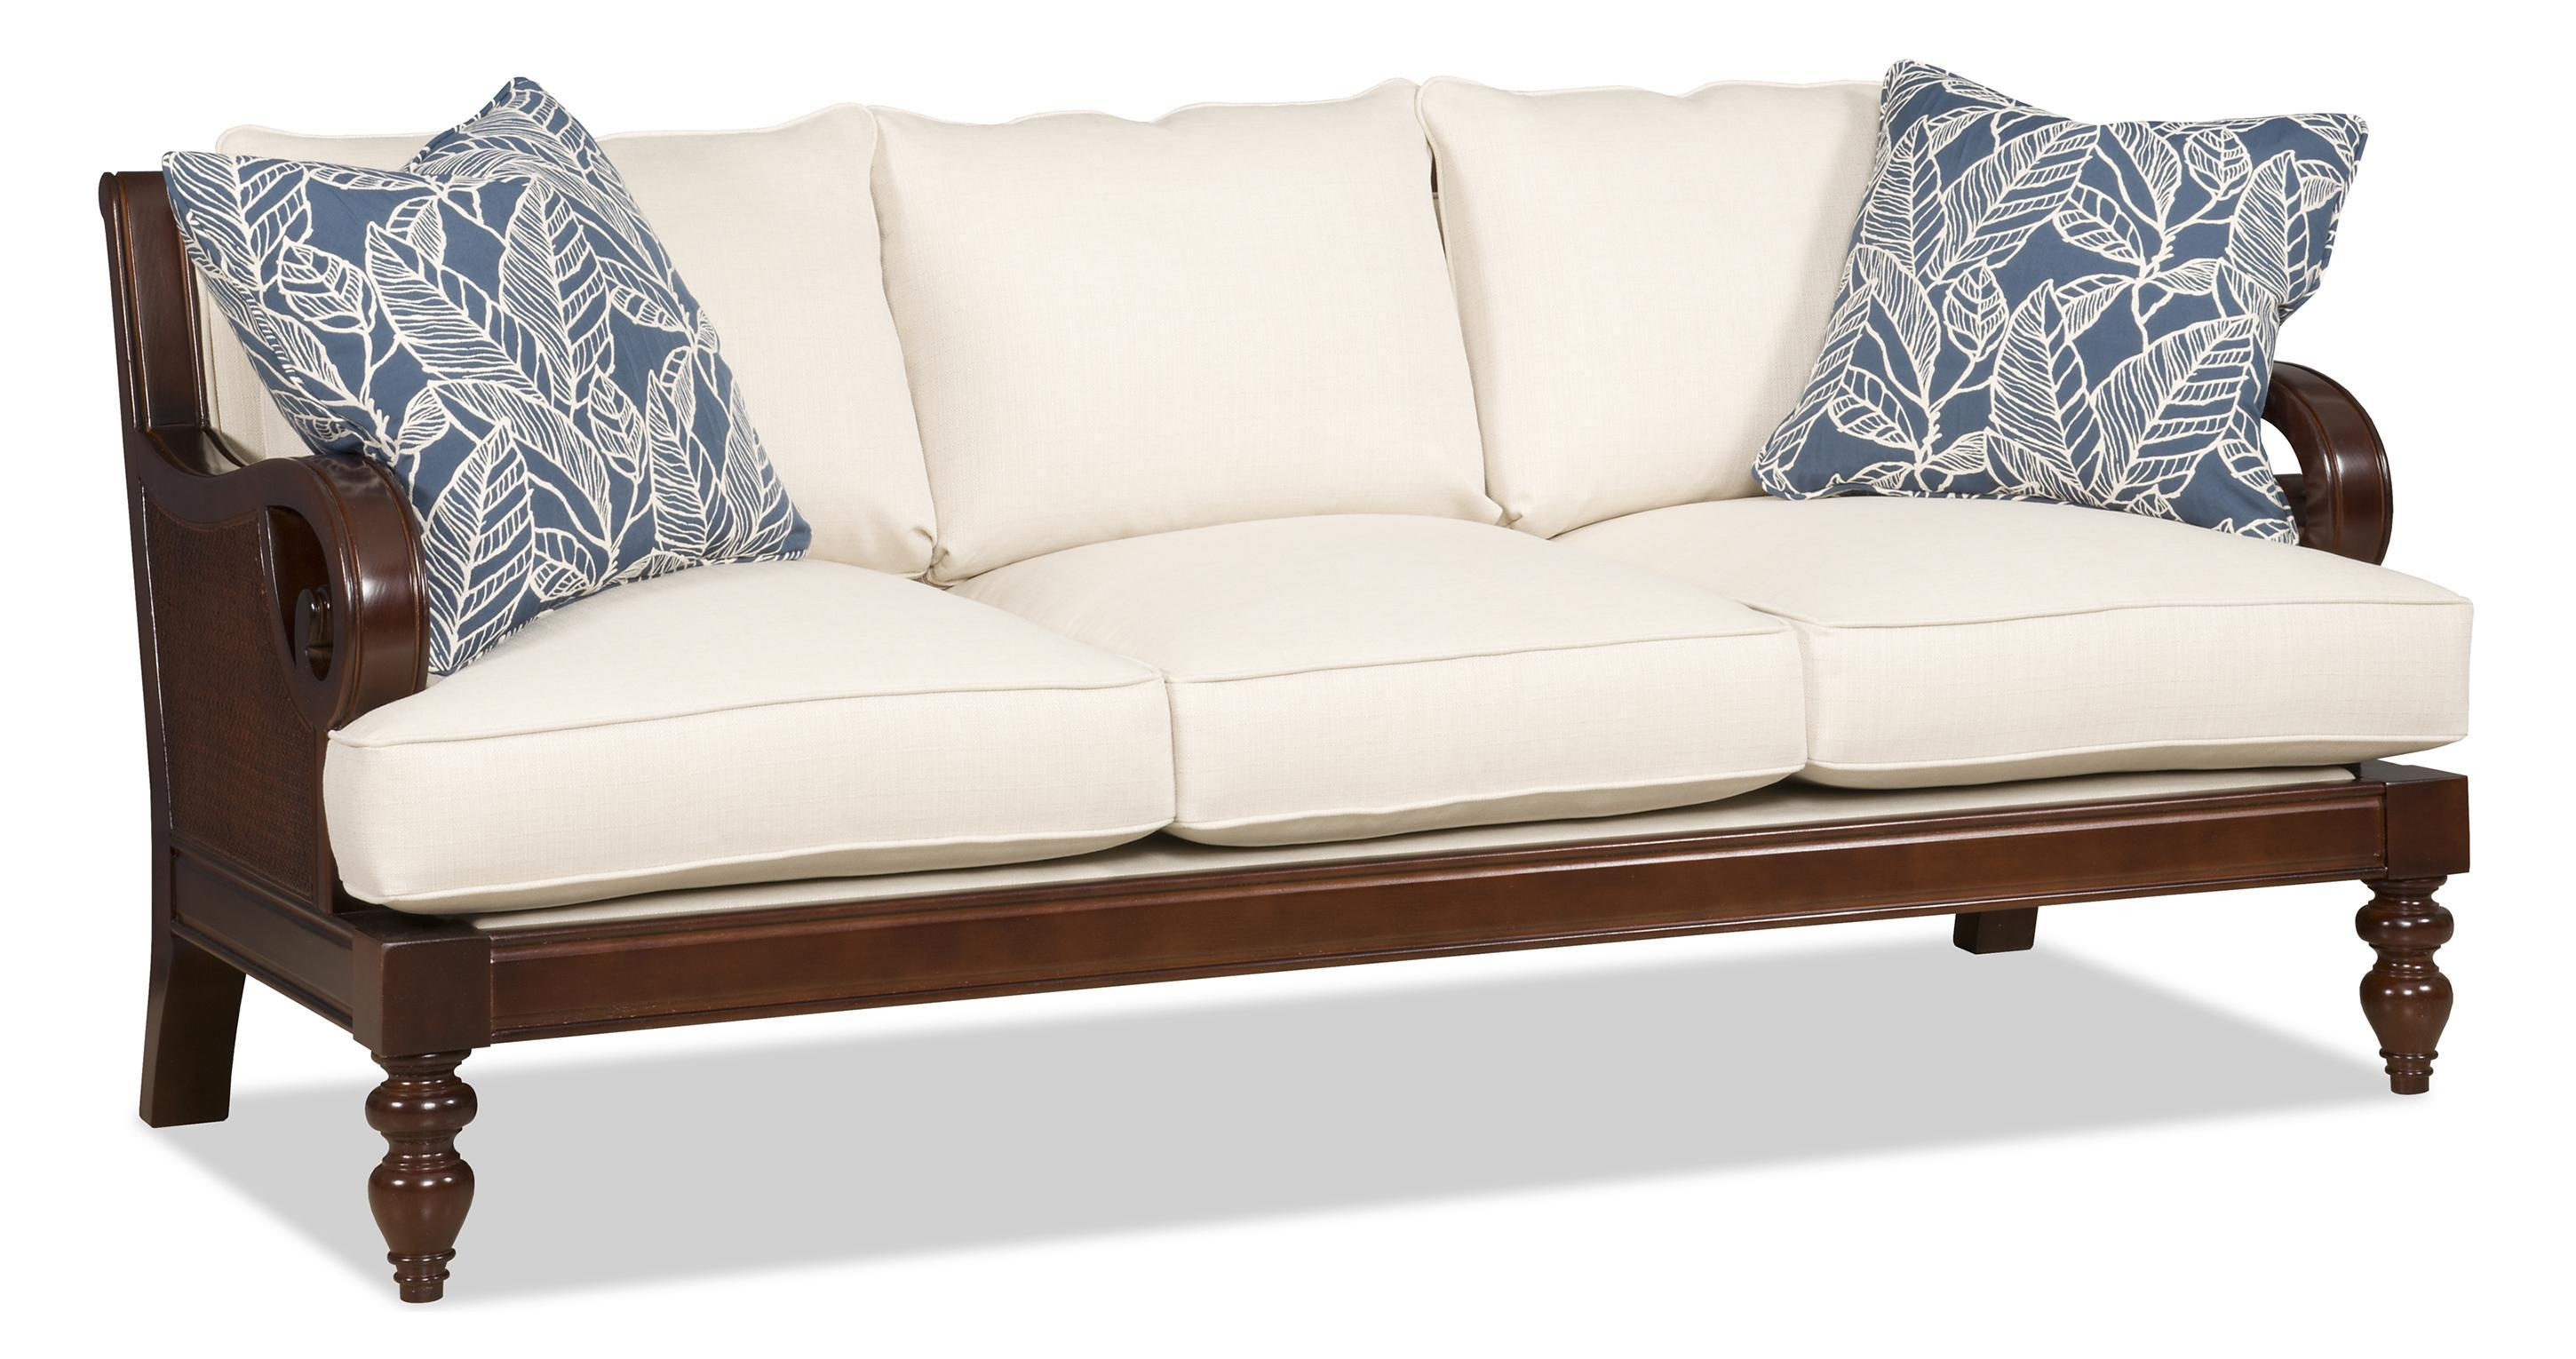 Sam Moore Tailynn Tropical Sofa With Exposed Wood And Scrolled Pertaining To Sam Moore Sofas (Image 15 of 20)